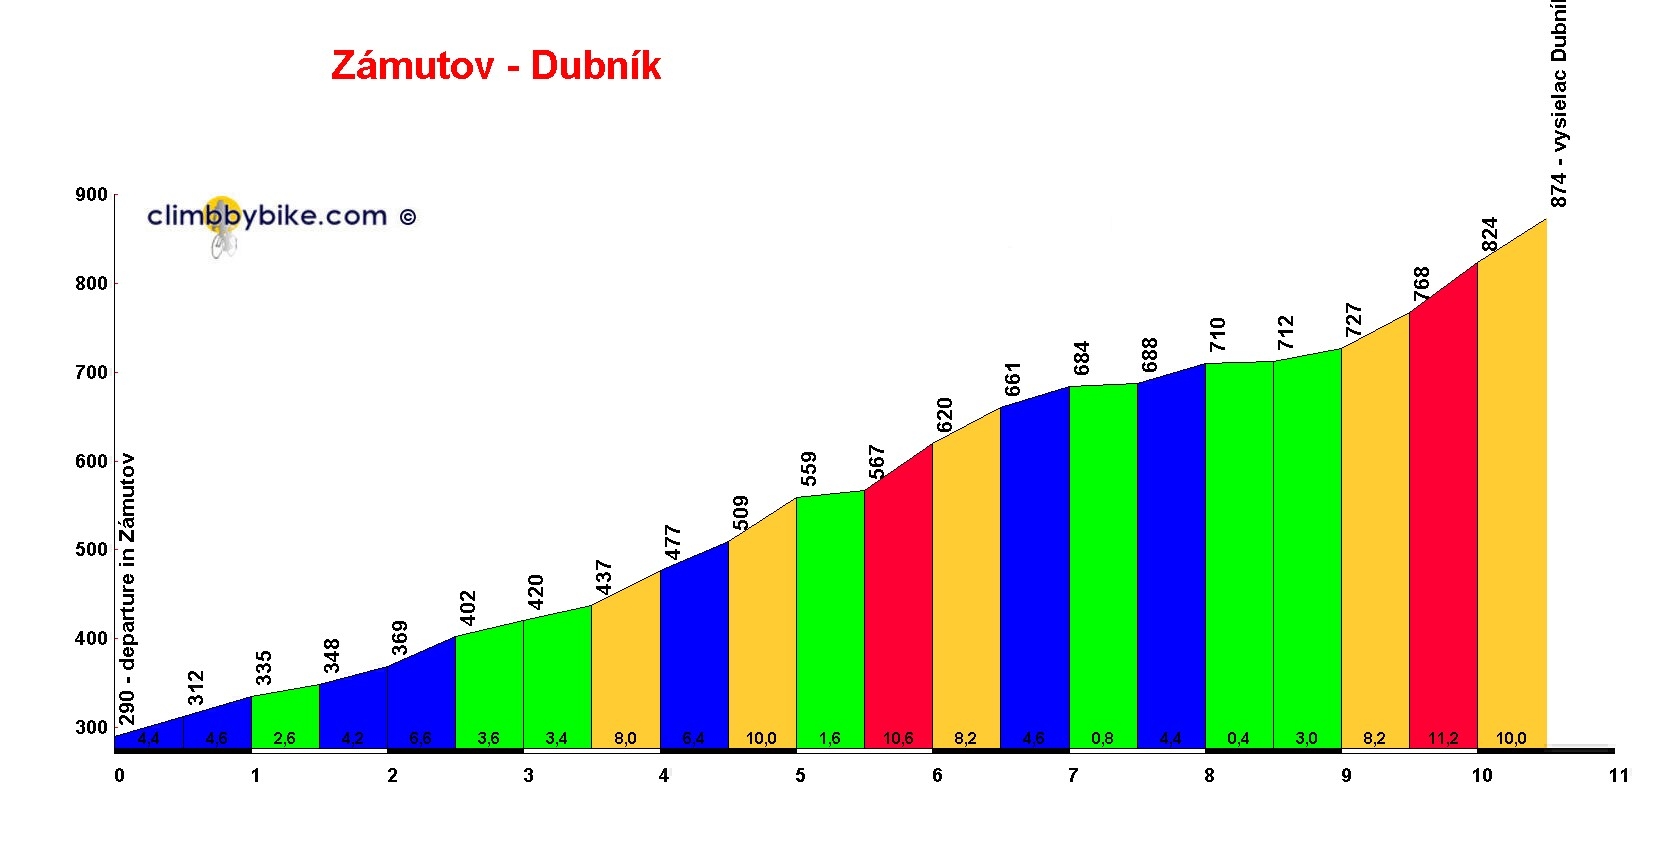 Elevation profile for Zámutov - Dubník